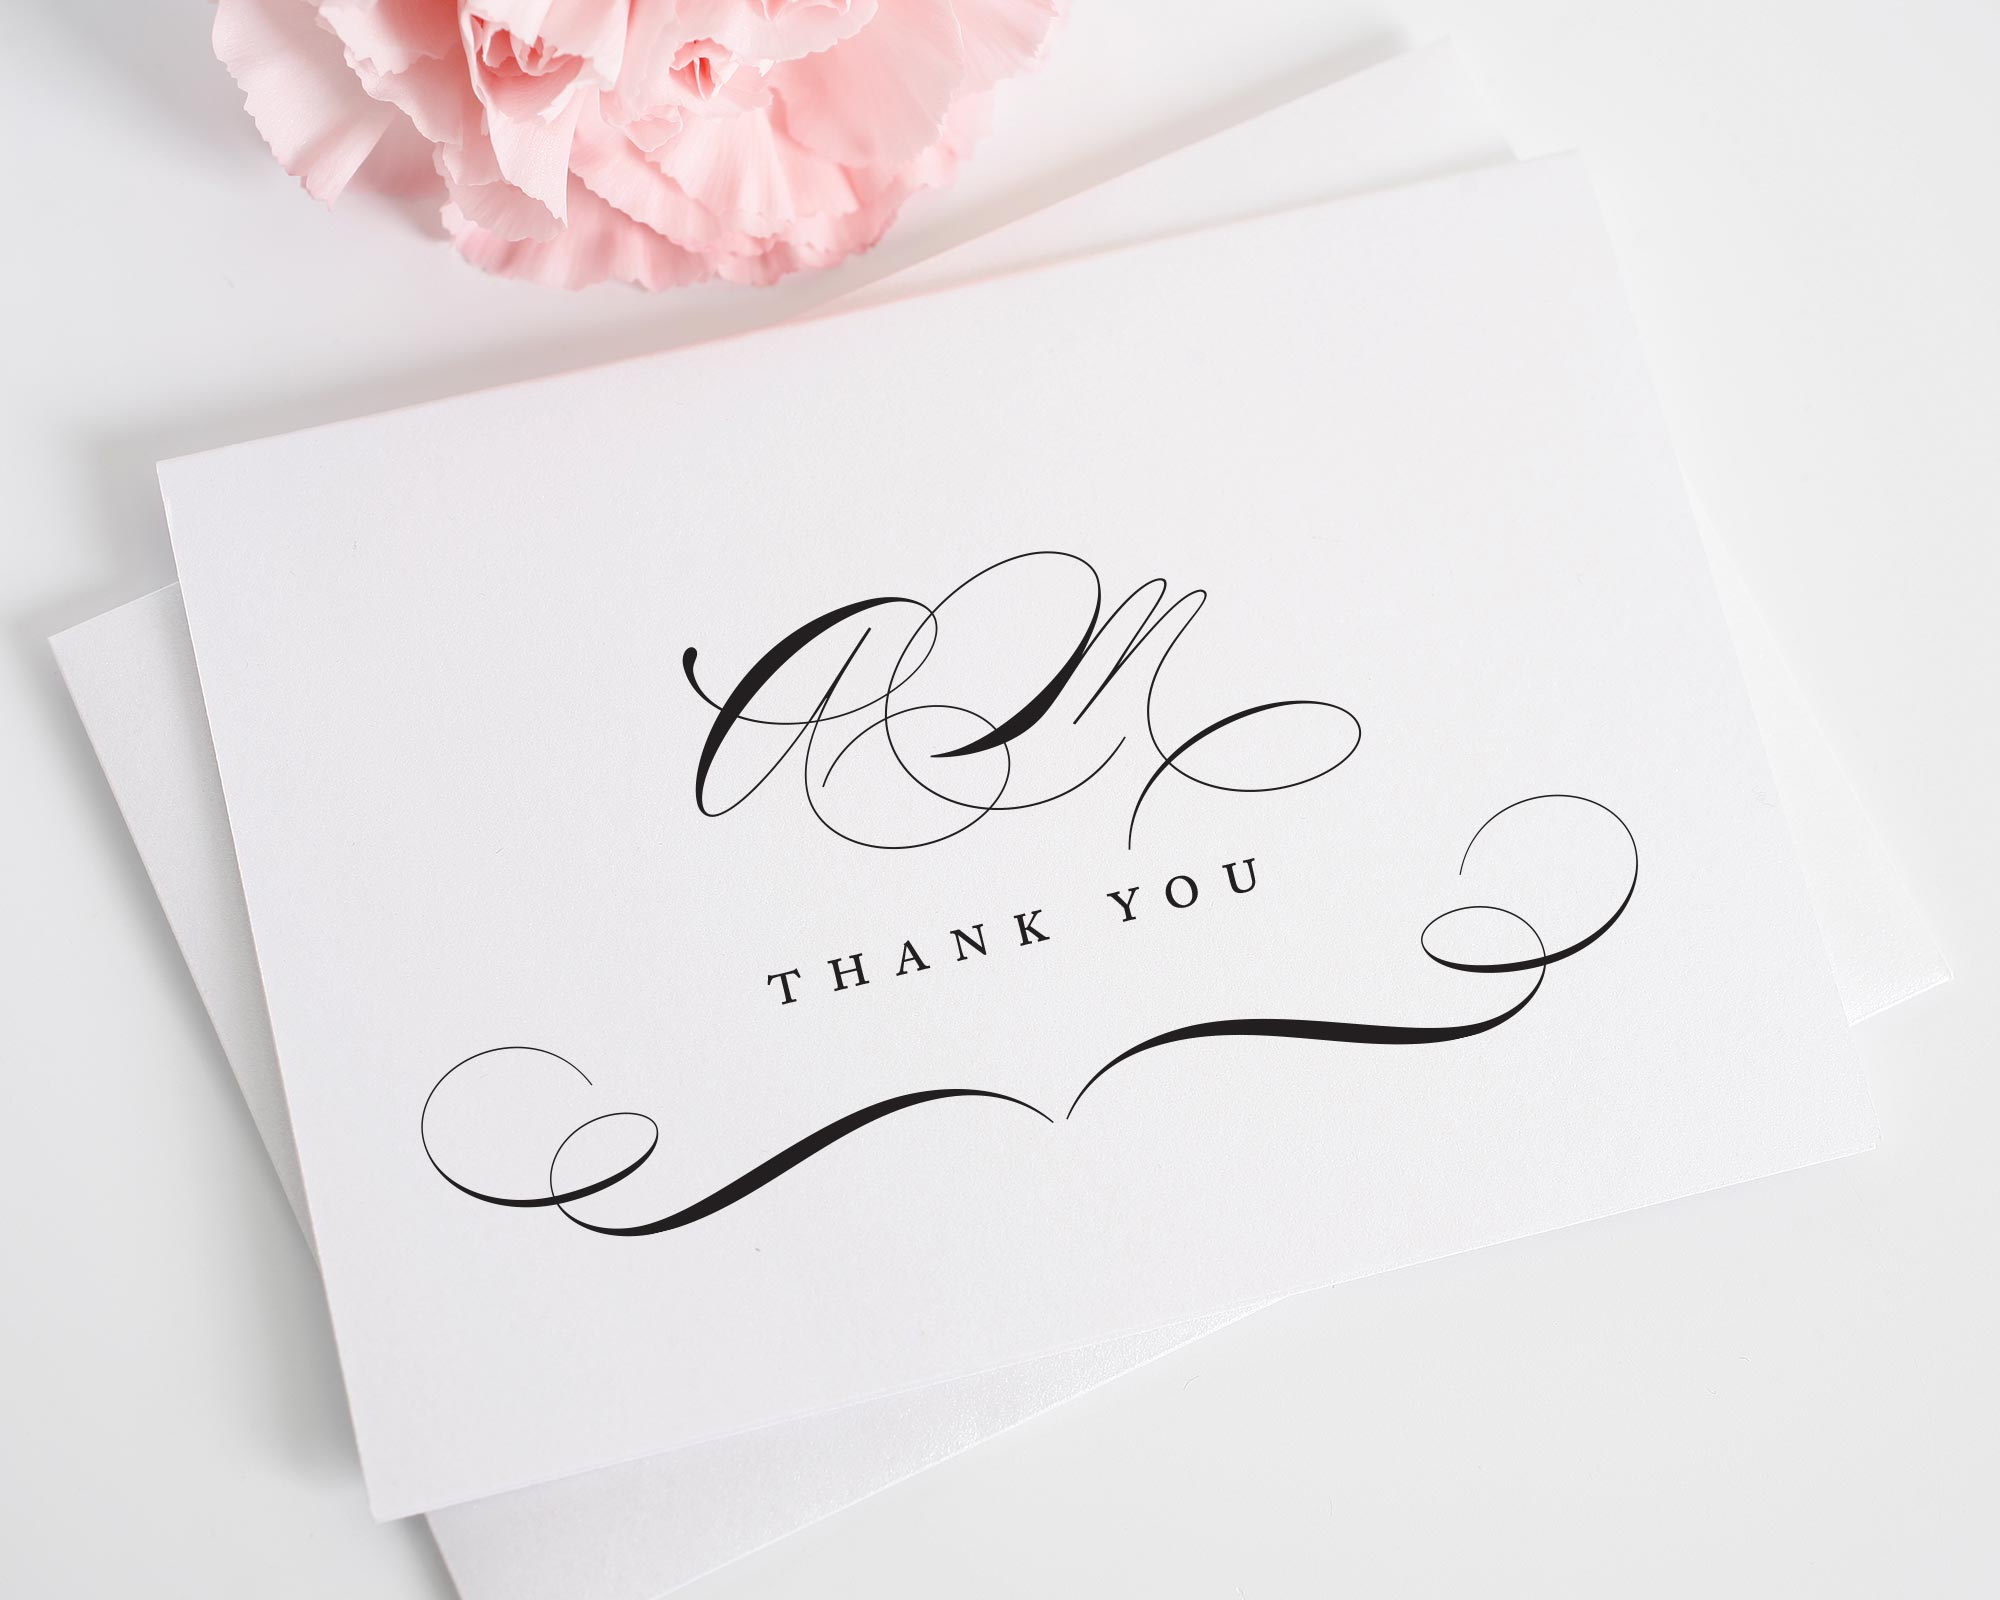 Wedding Thank You Cards with Monogram - Thank You Cards by Shine